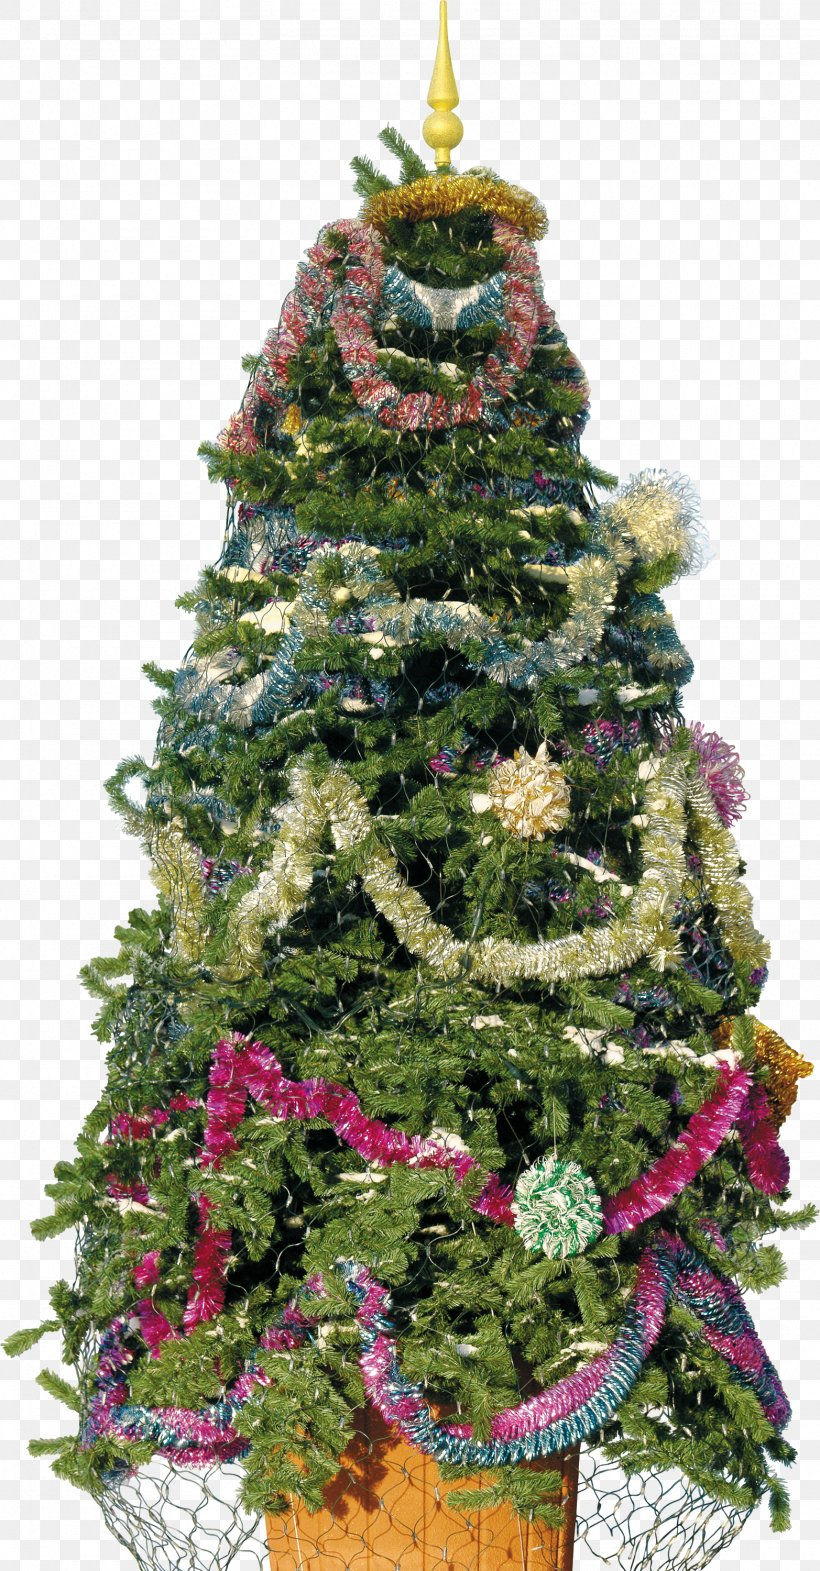 Christmas Tree New Year Tree Clip Art, PNG, 1565x3000px, Christmas Tree, Artificial Christmas Tree, Christmas, Christmas Carol, Christmas Decoration Download Free